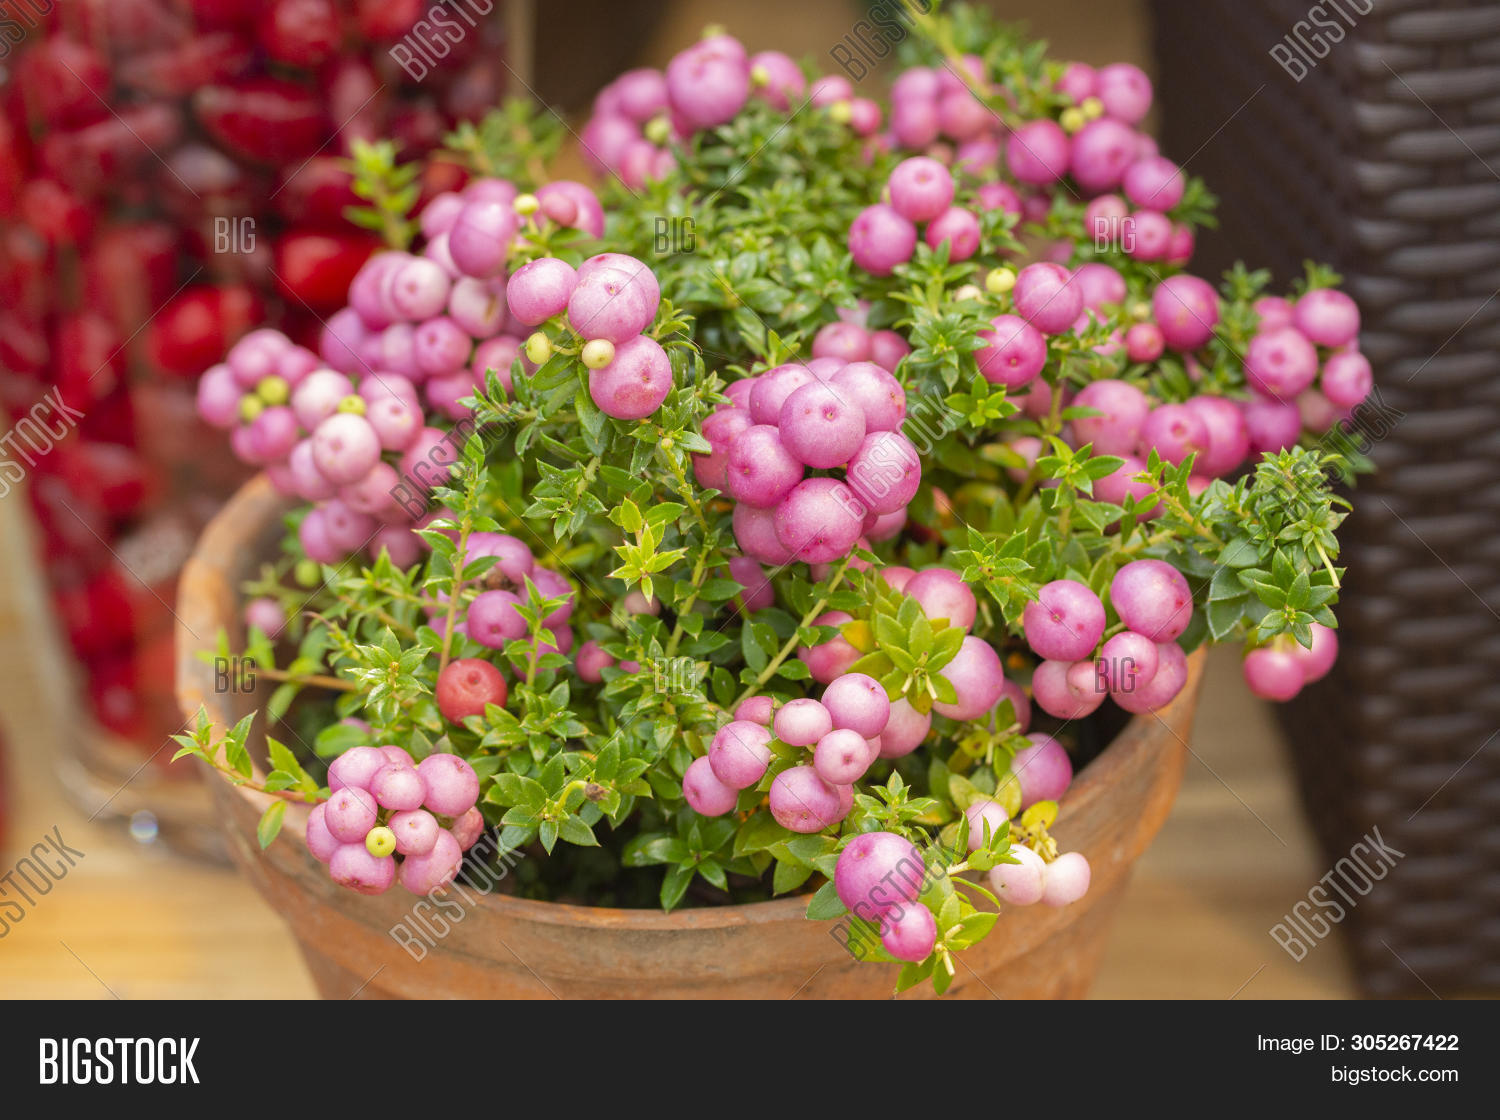 Pernettya Berries.Pernettya Mucronata Image Photo Free Trial Bigstock